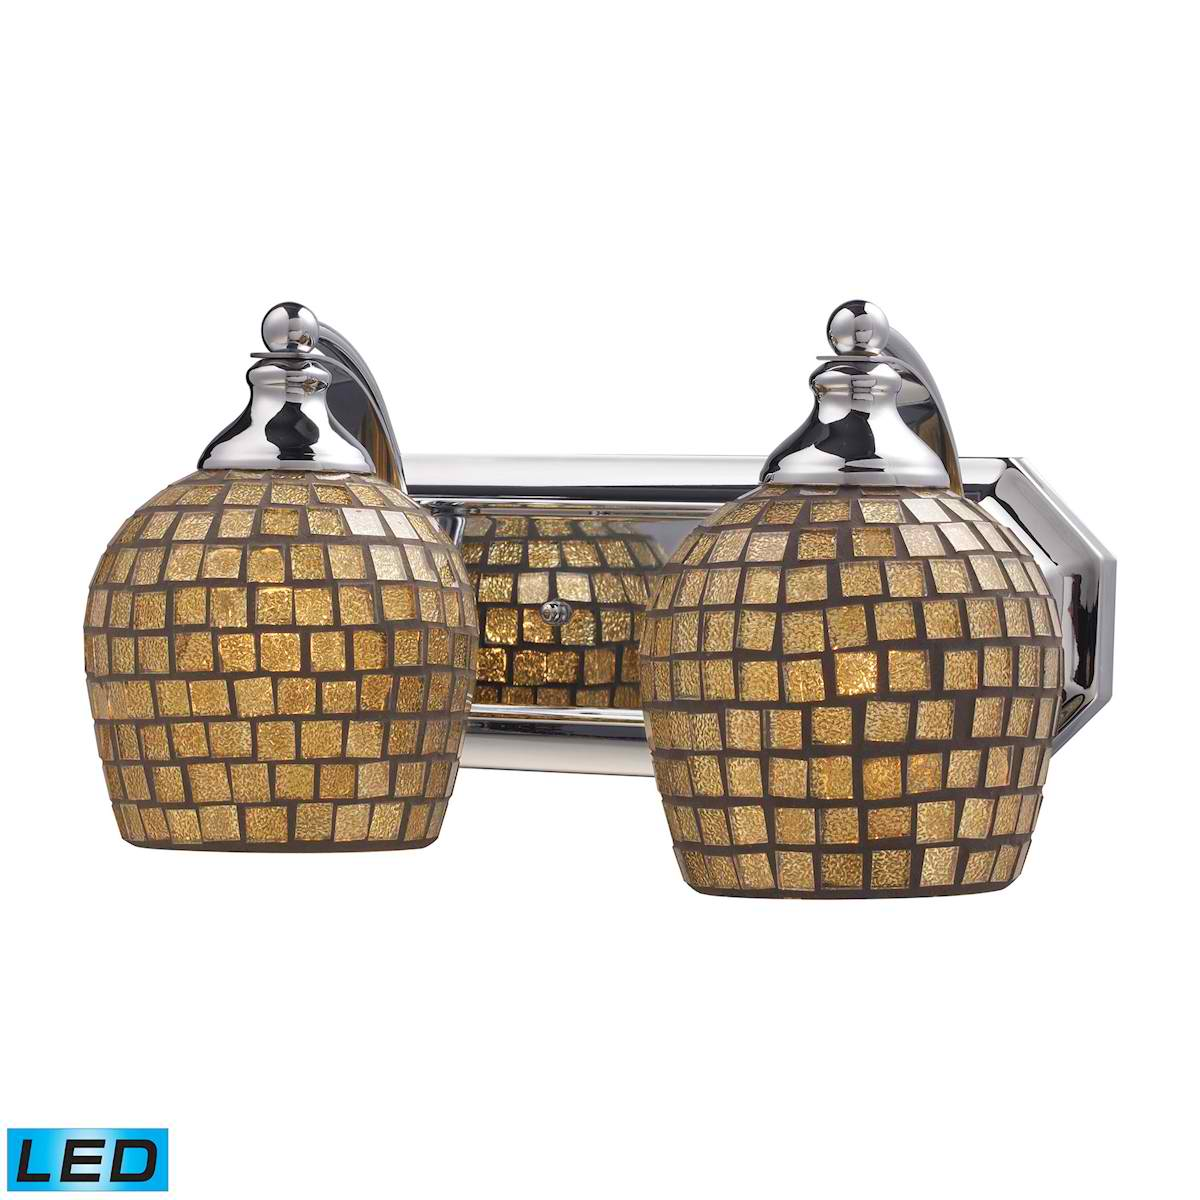 2 Light Vanity in Polished Chrome and Gold Mosaic Glass - LED, 800 Lumens (1600 Lumens Total) with Full Scale